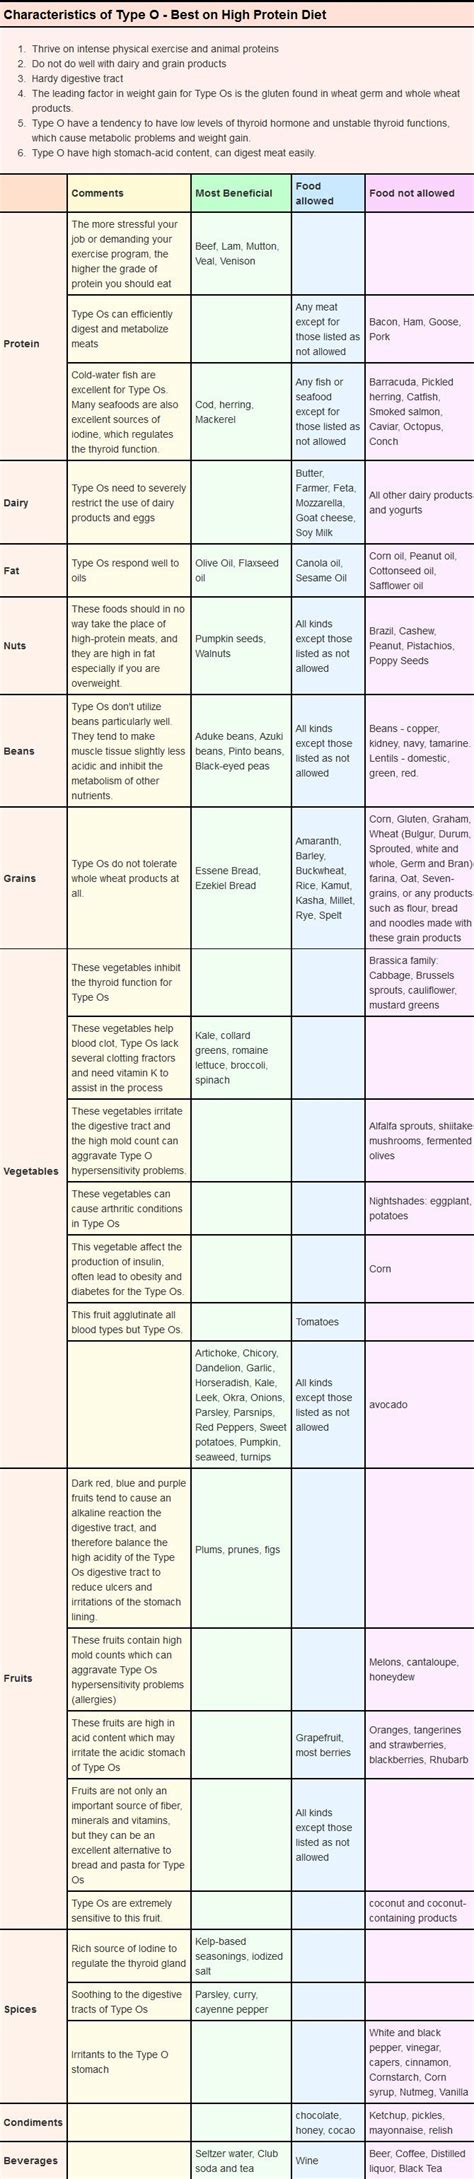 cuisine plan type weight loss diet for b positive blood